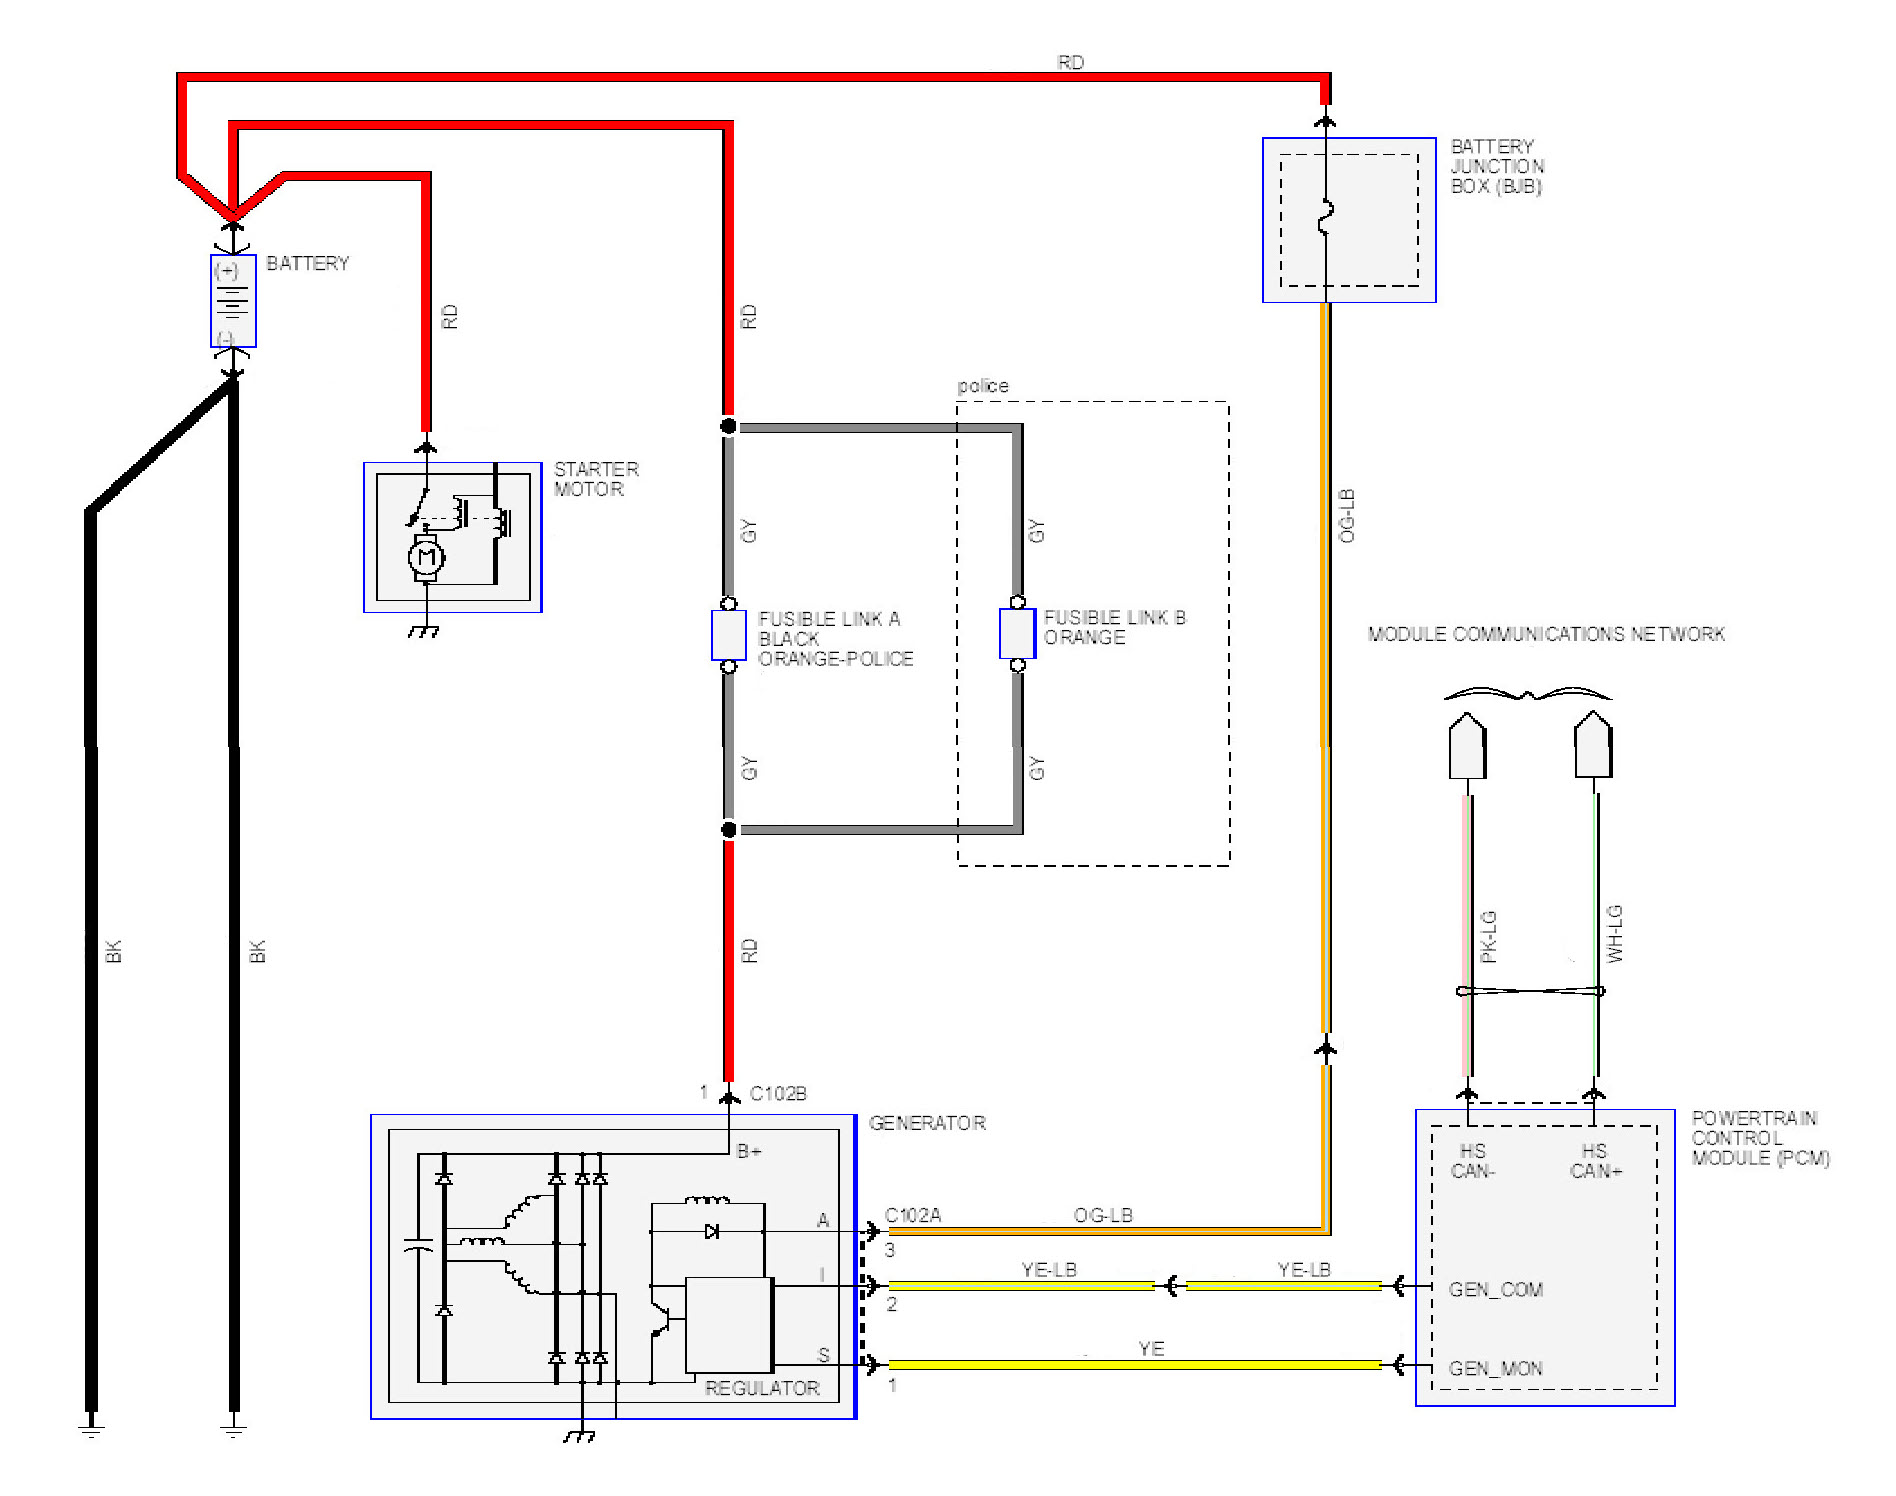 wiring diagram moreover ford ranger alternator wiring free engine image for user manual